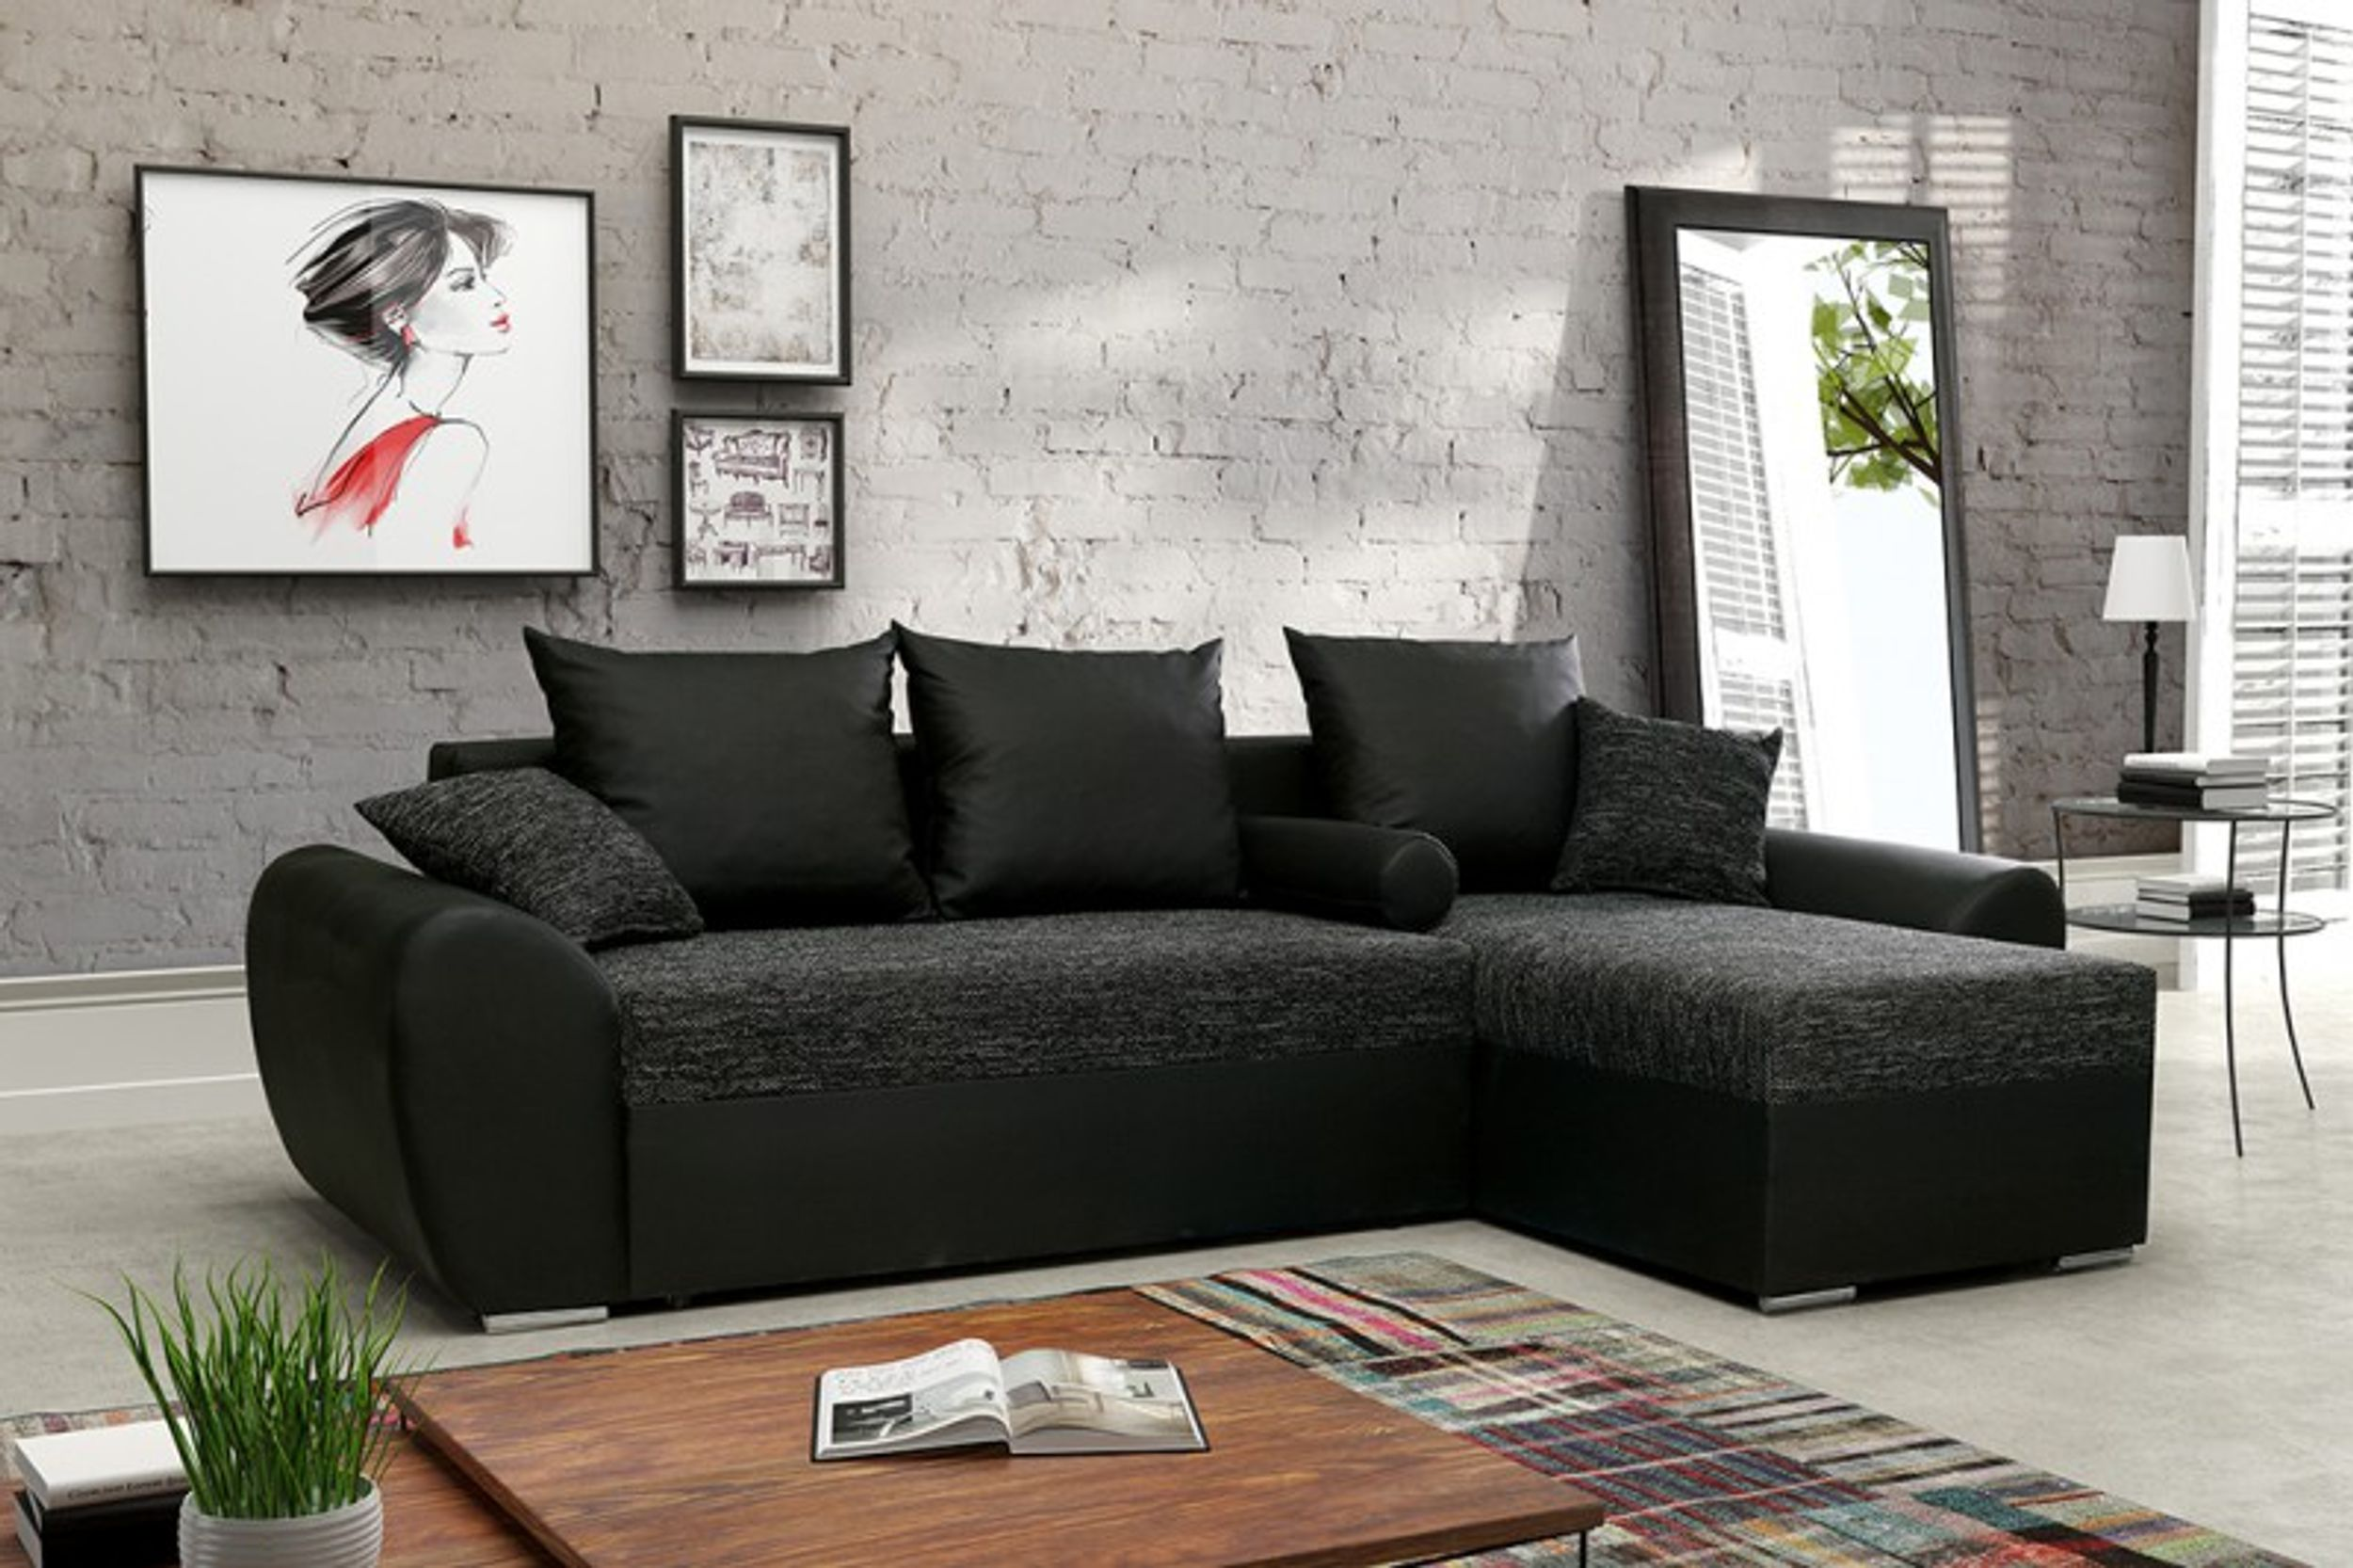 schlafsofa sofa couch ecksofa eckcouch schwarz. Black Bedroom Furniture Sets. Home Design Ideas